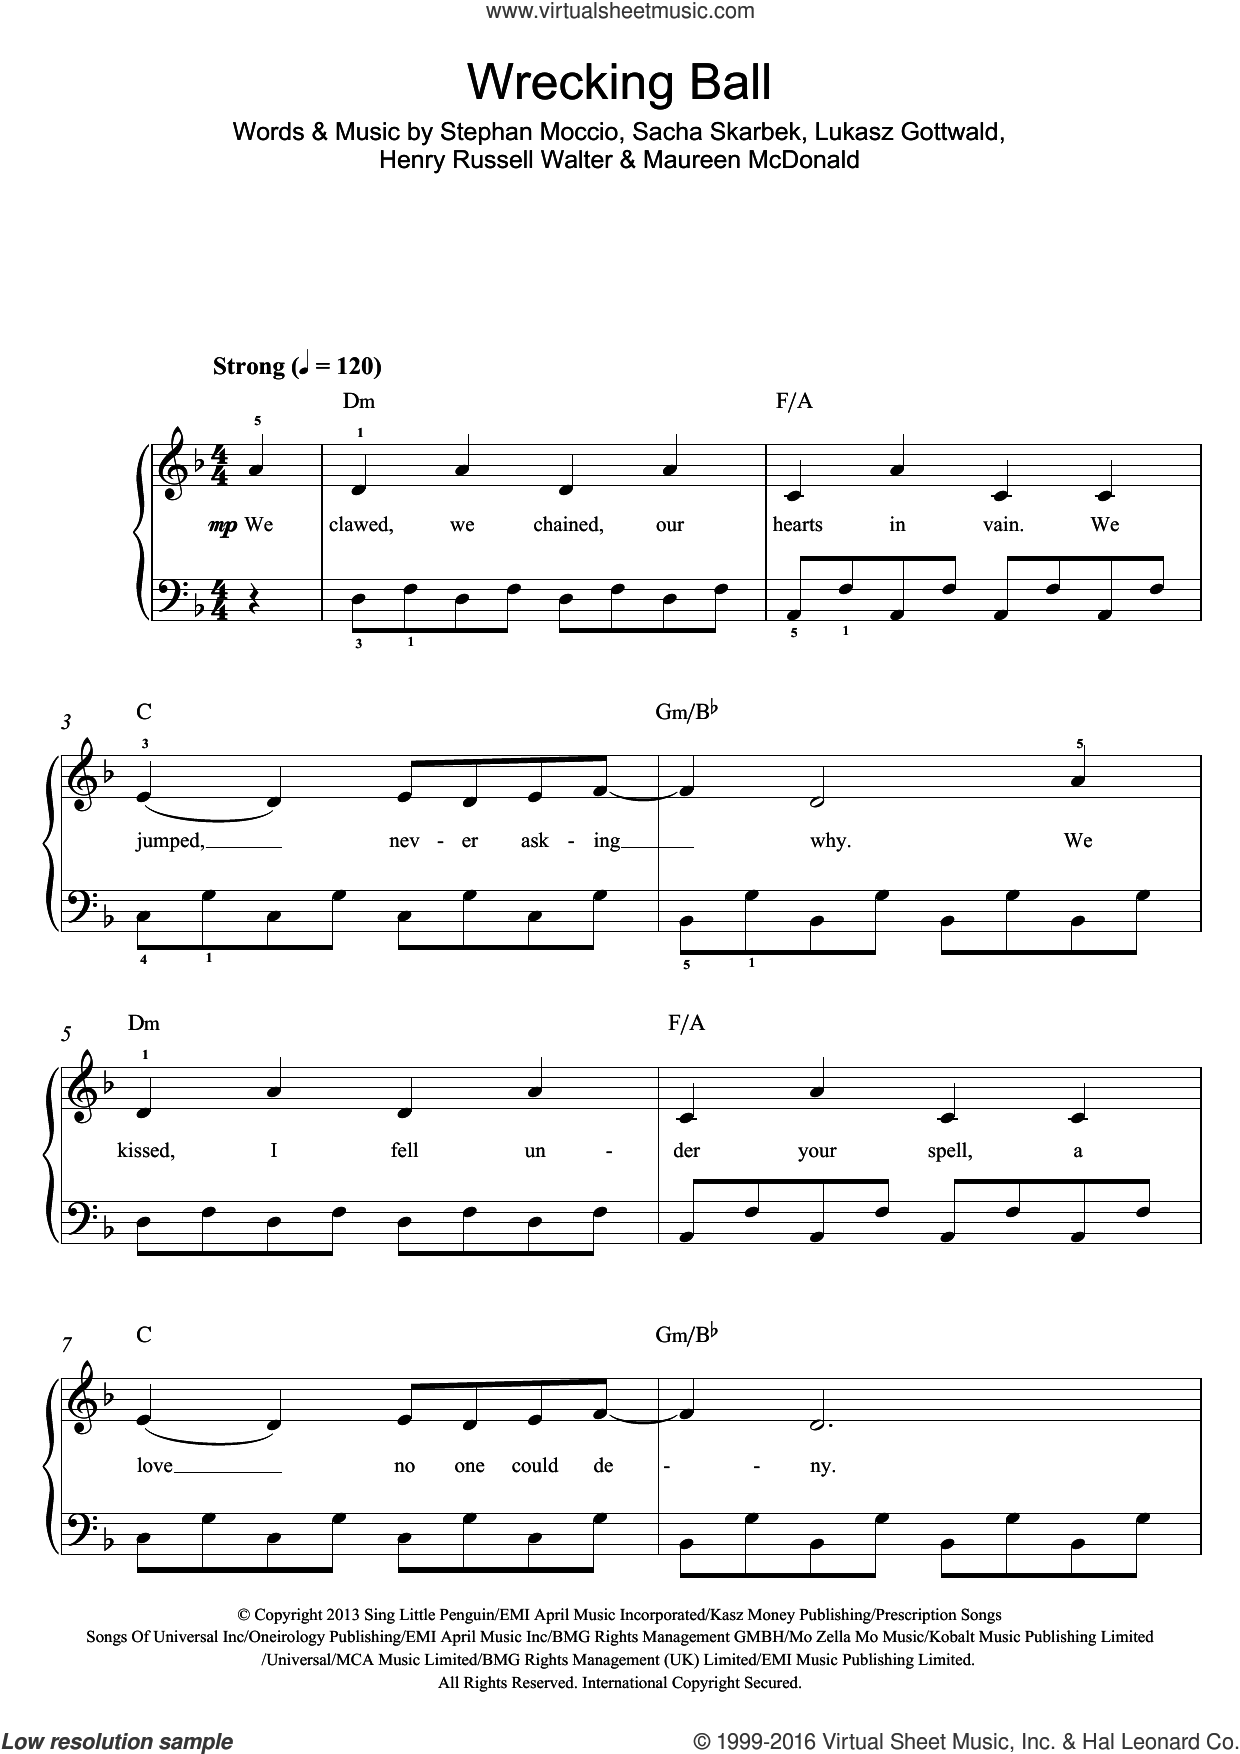 Wrecking Ball sheet music for piano solo (beginners) by Miley Cyrus, Henry Russell Walter, Lukasz Gottwald, Maureen McDonald, Sacha Skarbek and Stephan Moccio, beginner piano (beginners)